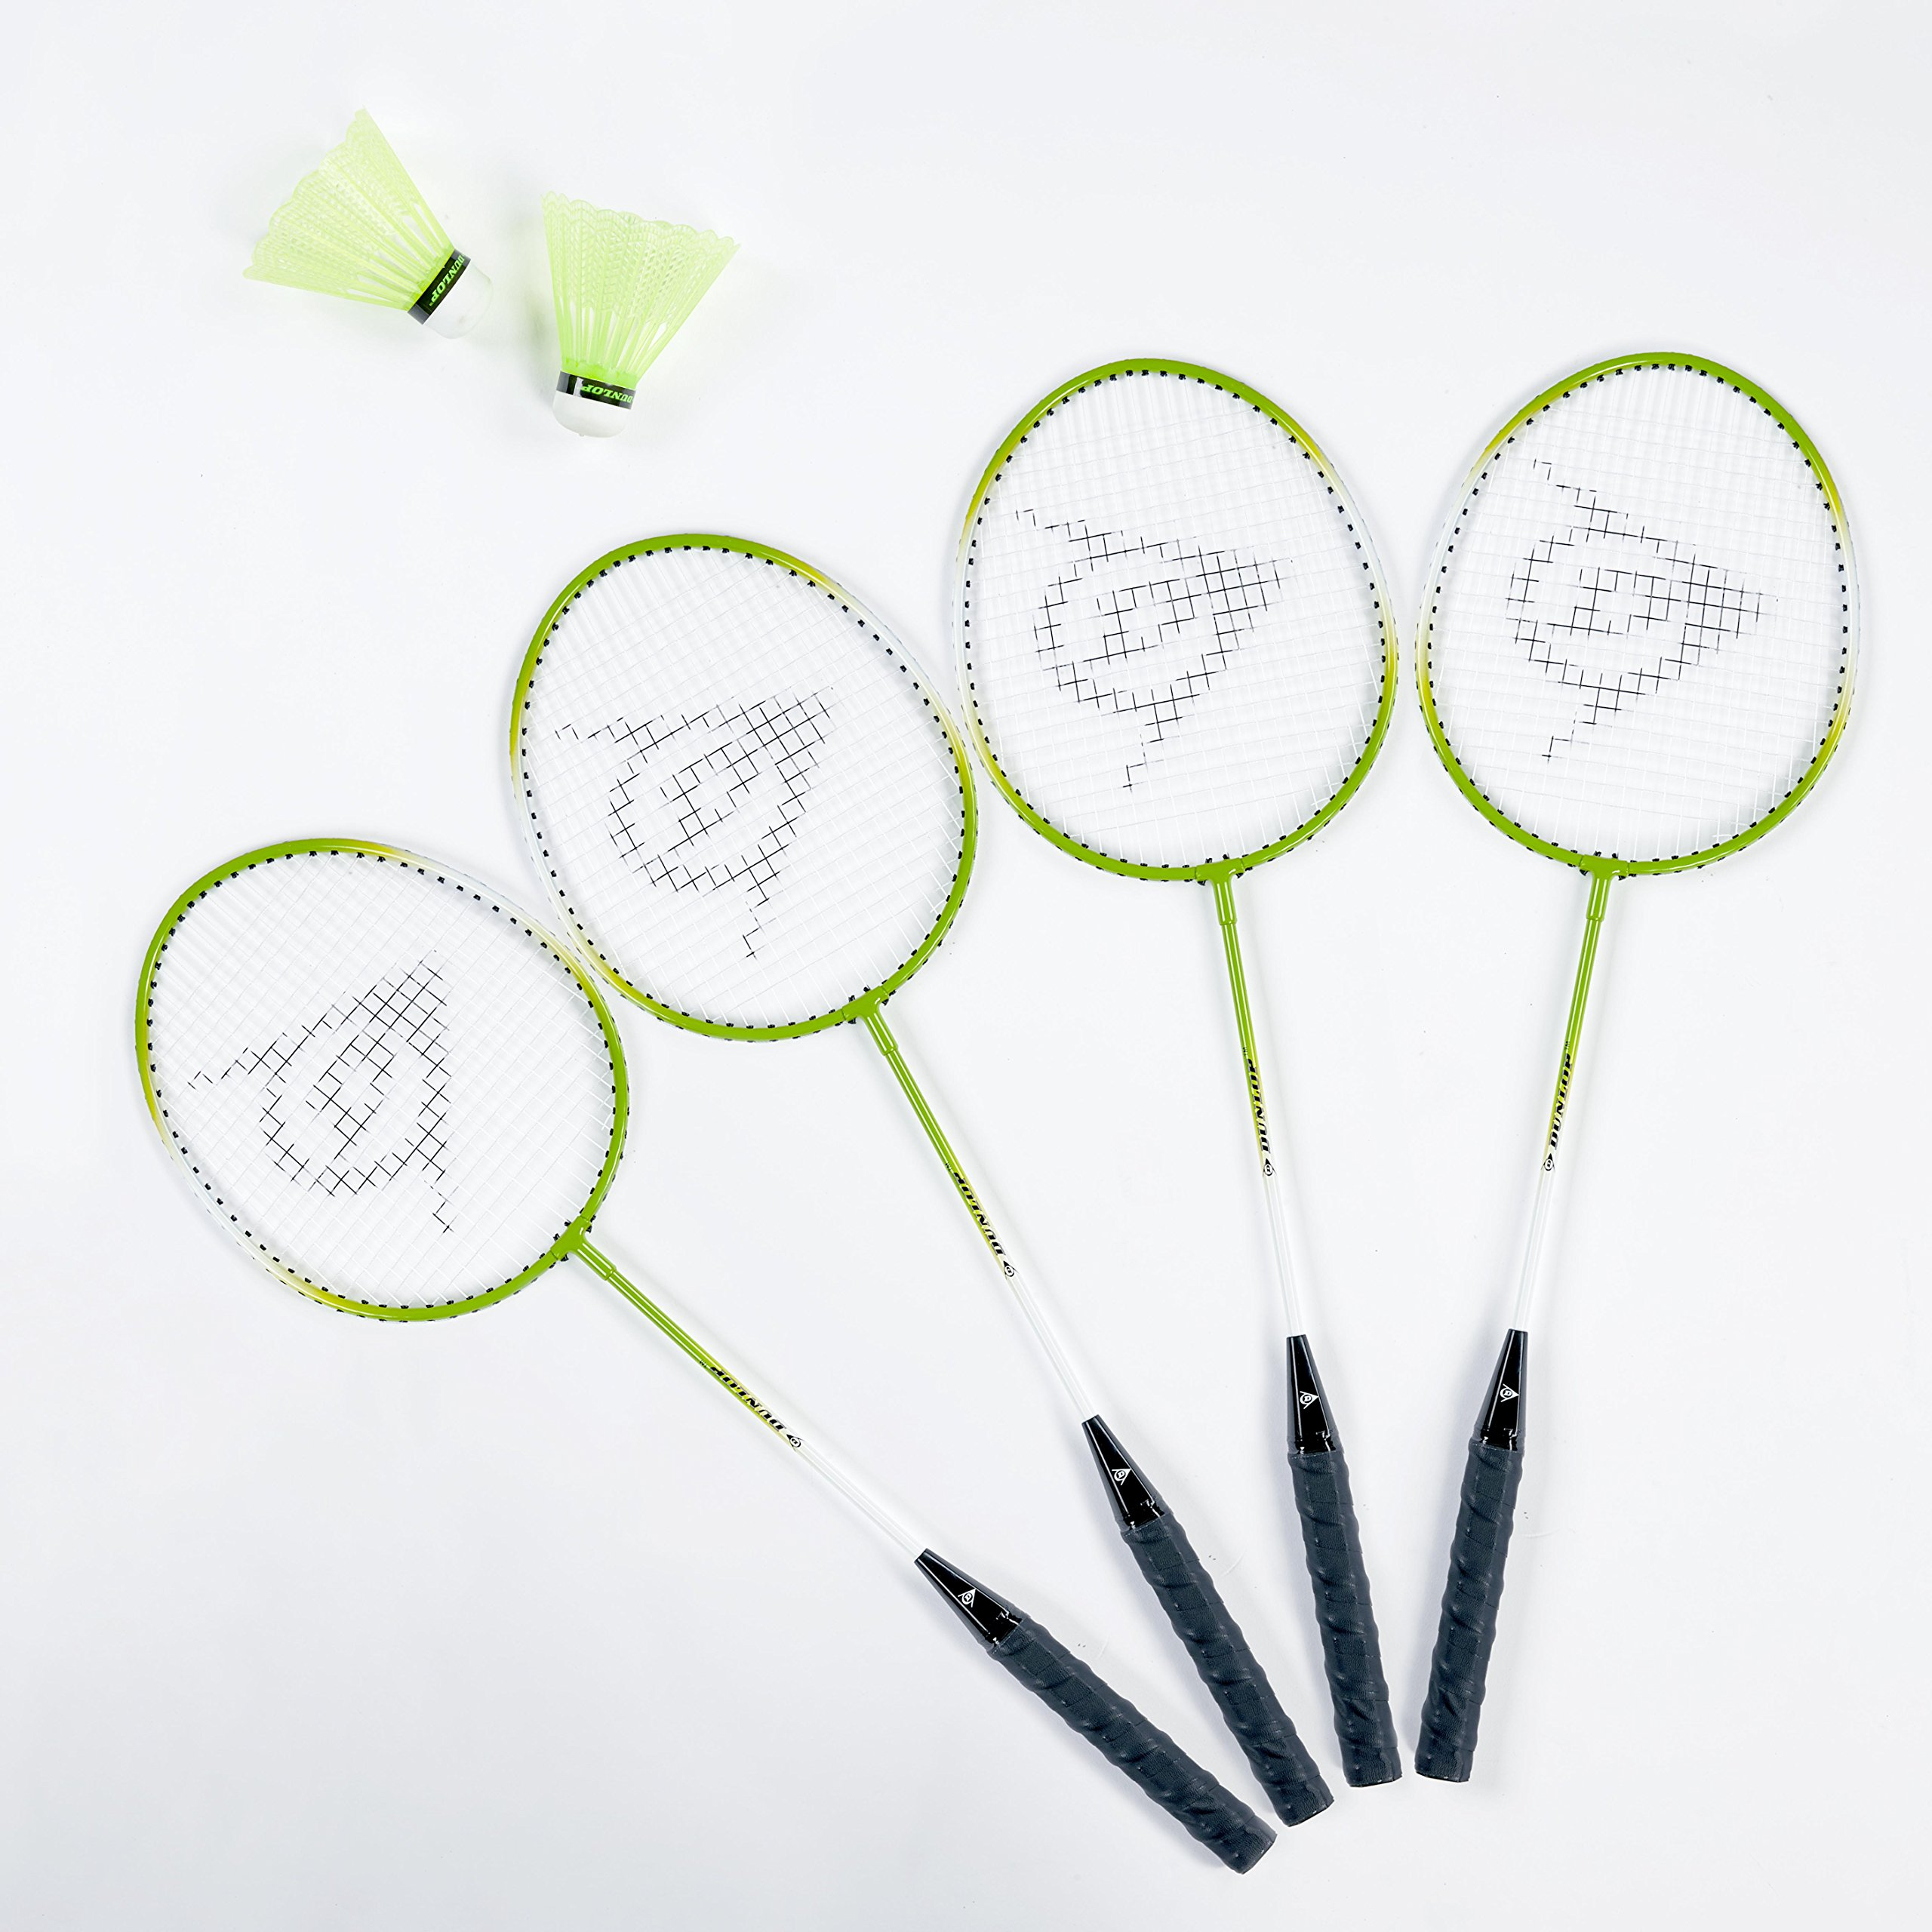 Dunlop Professional Volleyball Badminton Games: Classic Outdoor Lawn Game Set with Carry Bag by Dunlop (Image #2)